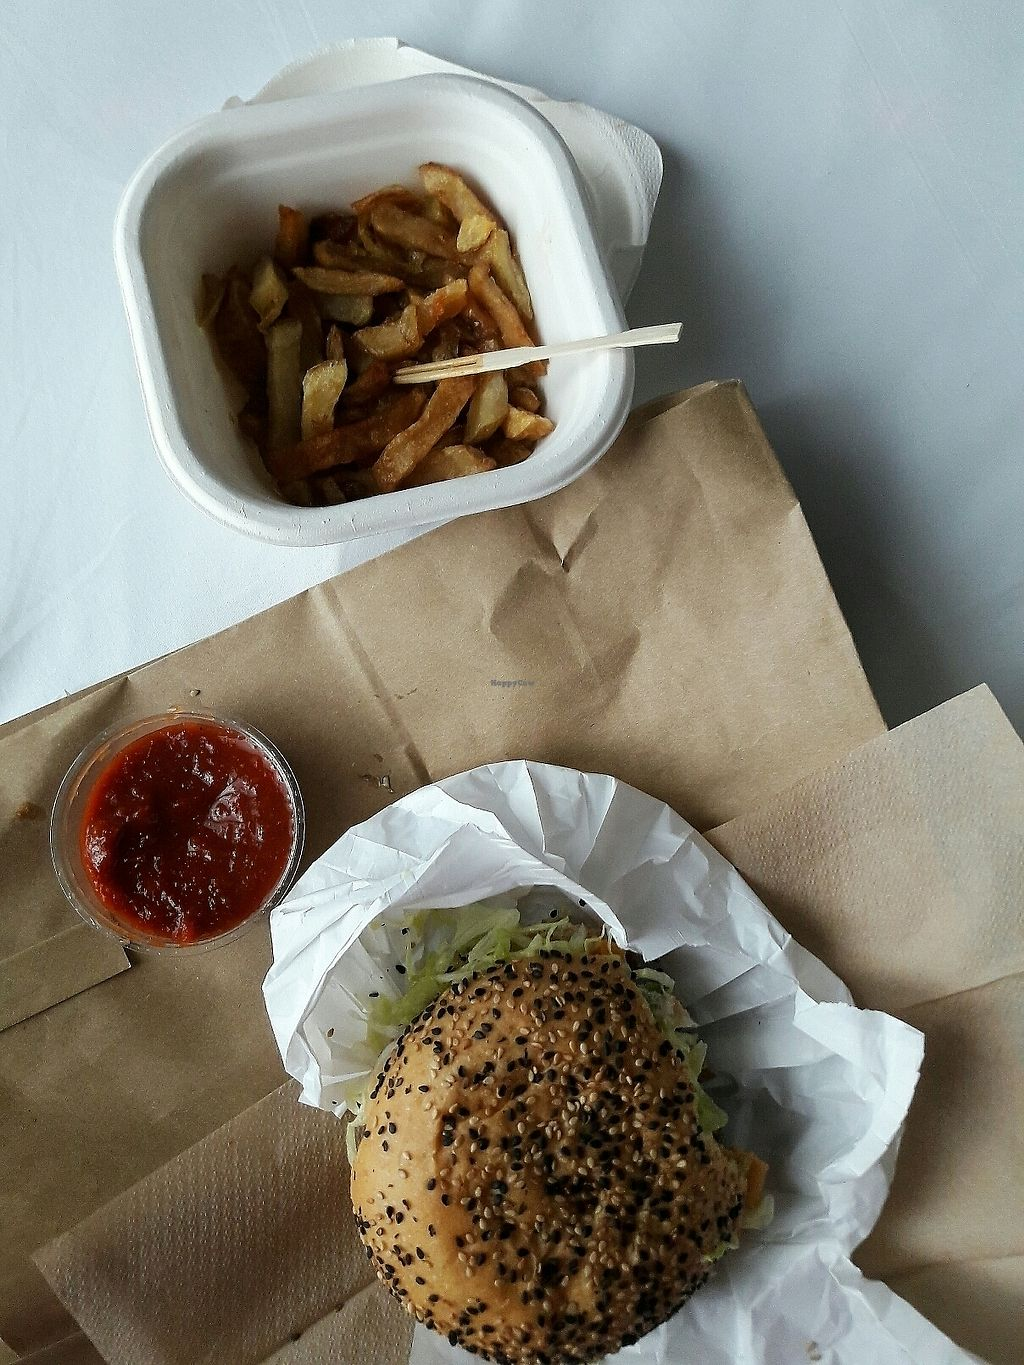 """Photo of Velicious Burger  by <a href=""""/members/profile/AmyLegrand"""">AmyLegrand</a> <br/>Mariatchi!! ❤ <br/> August 11, 2017  - <a href='/contact/abuse/image/97593/291565'>Report</a>"""